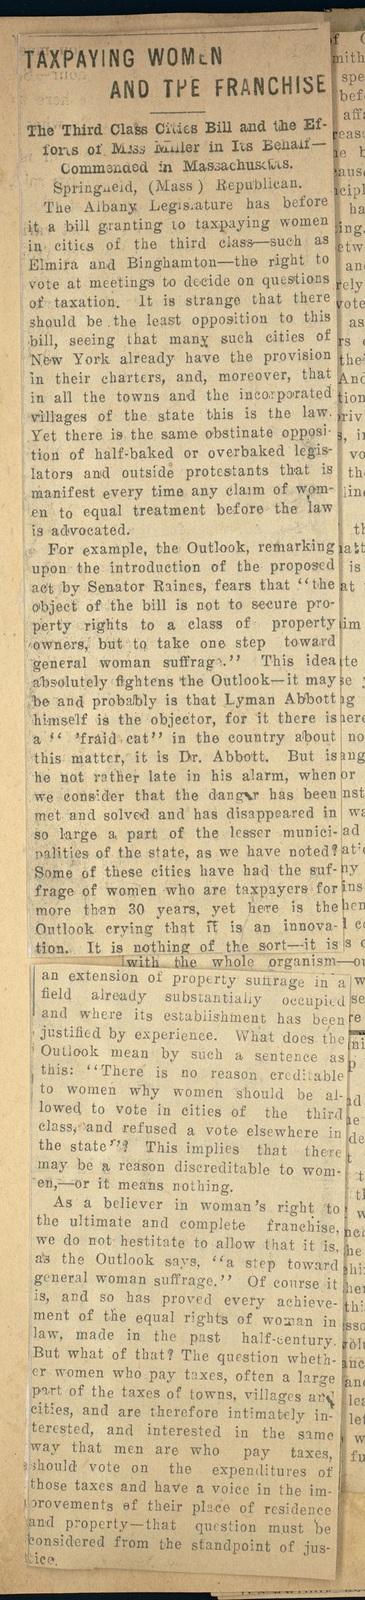 Hearings on Tax Suffrage for Women Taxpayers